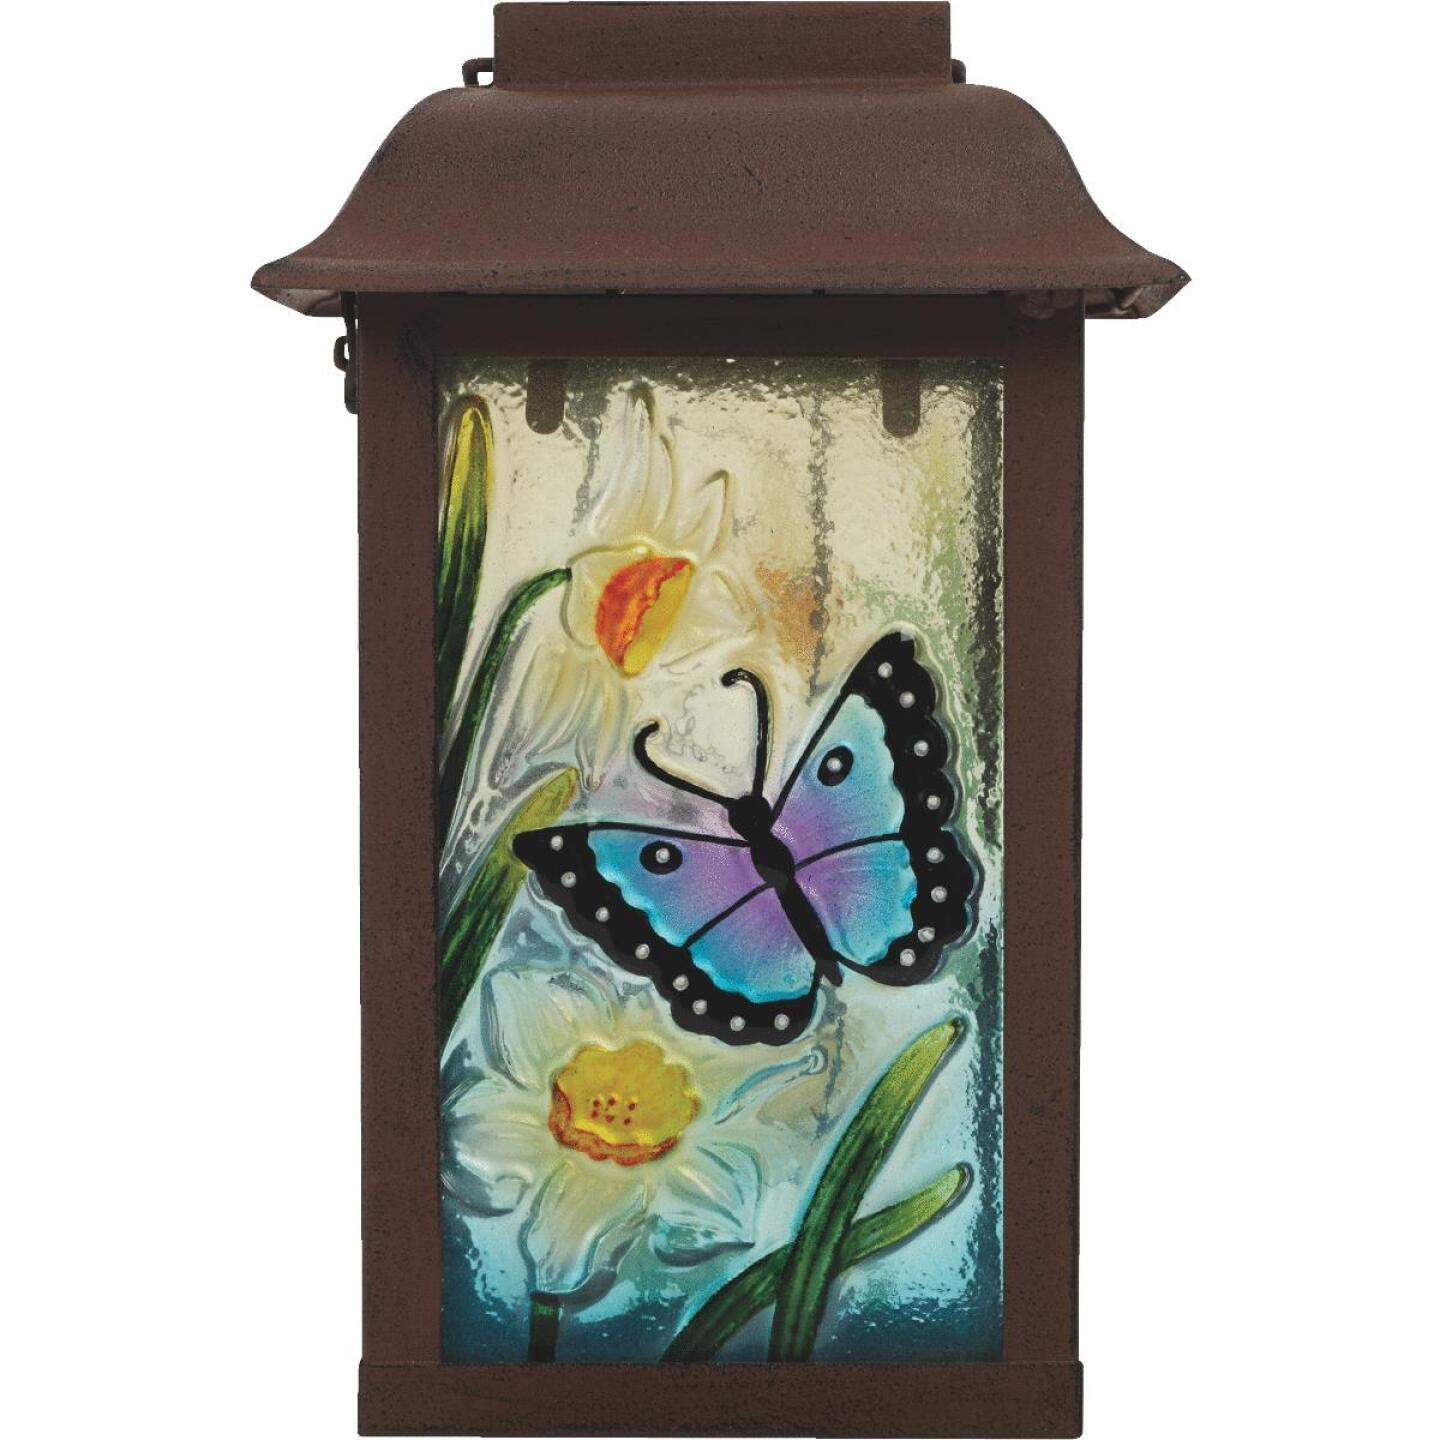 Outdoor Expressions 6 In. W. x 9.5 In. H. x 6 In. D. Solar Patio Latern Image 7